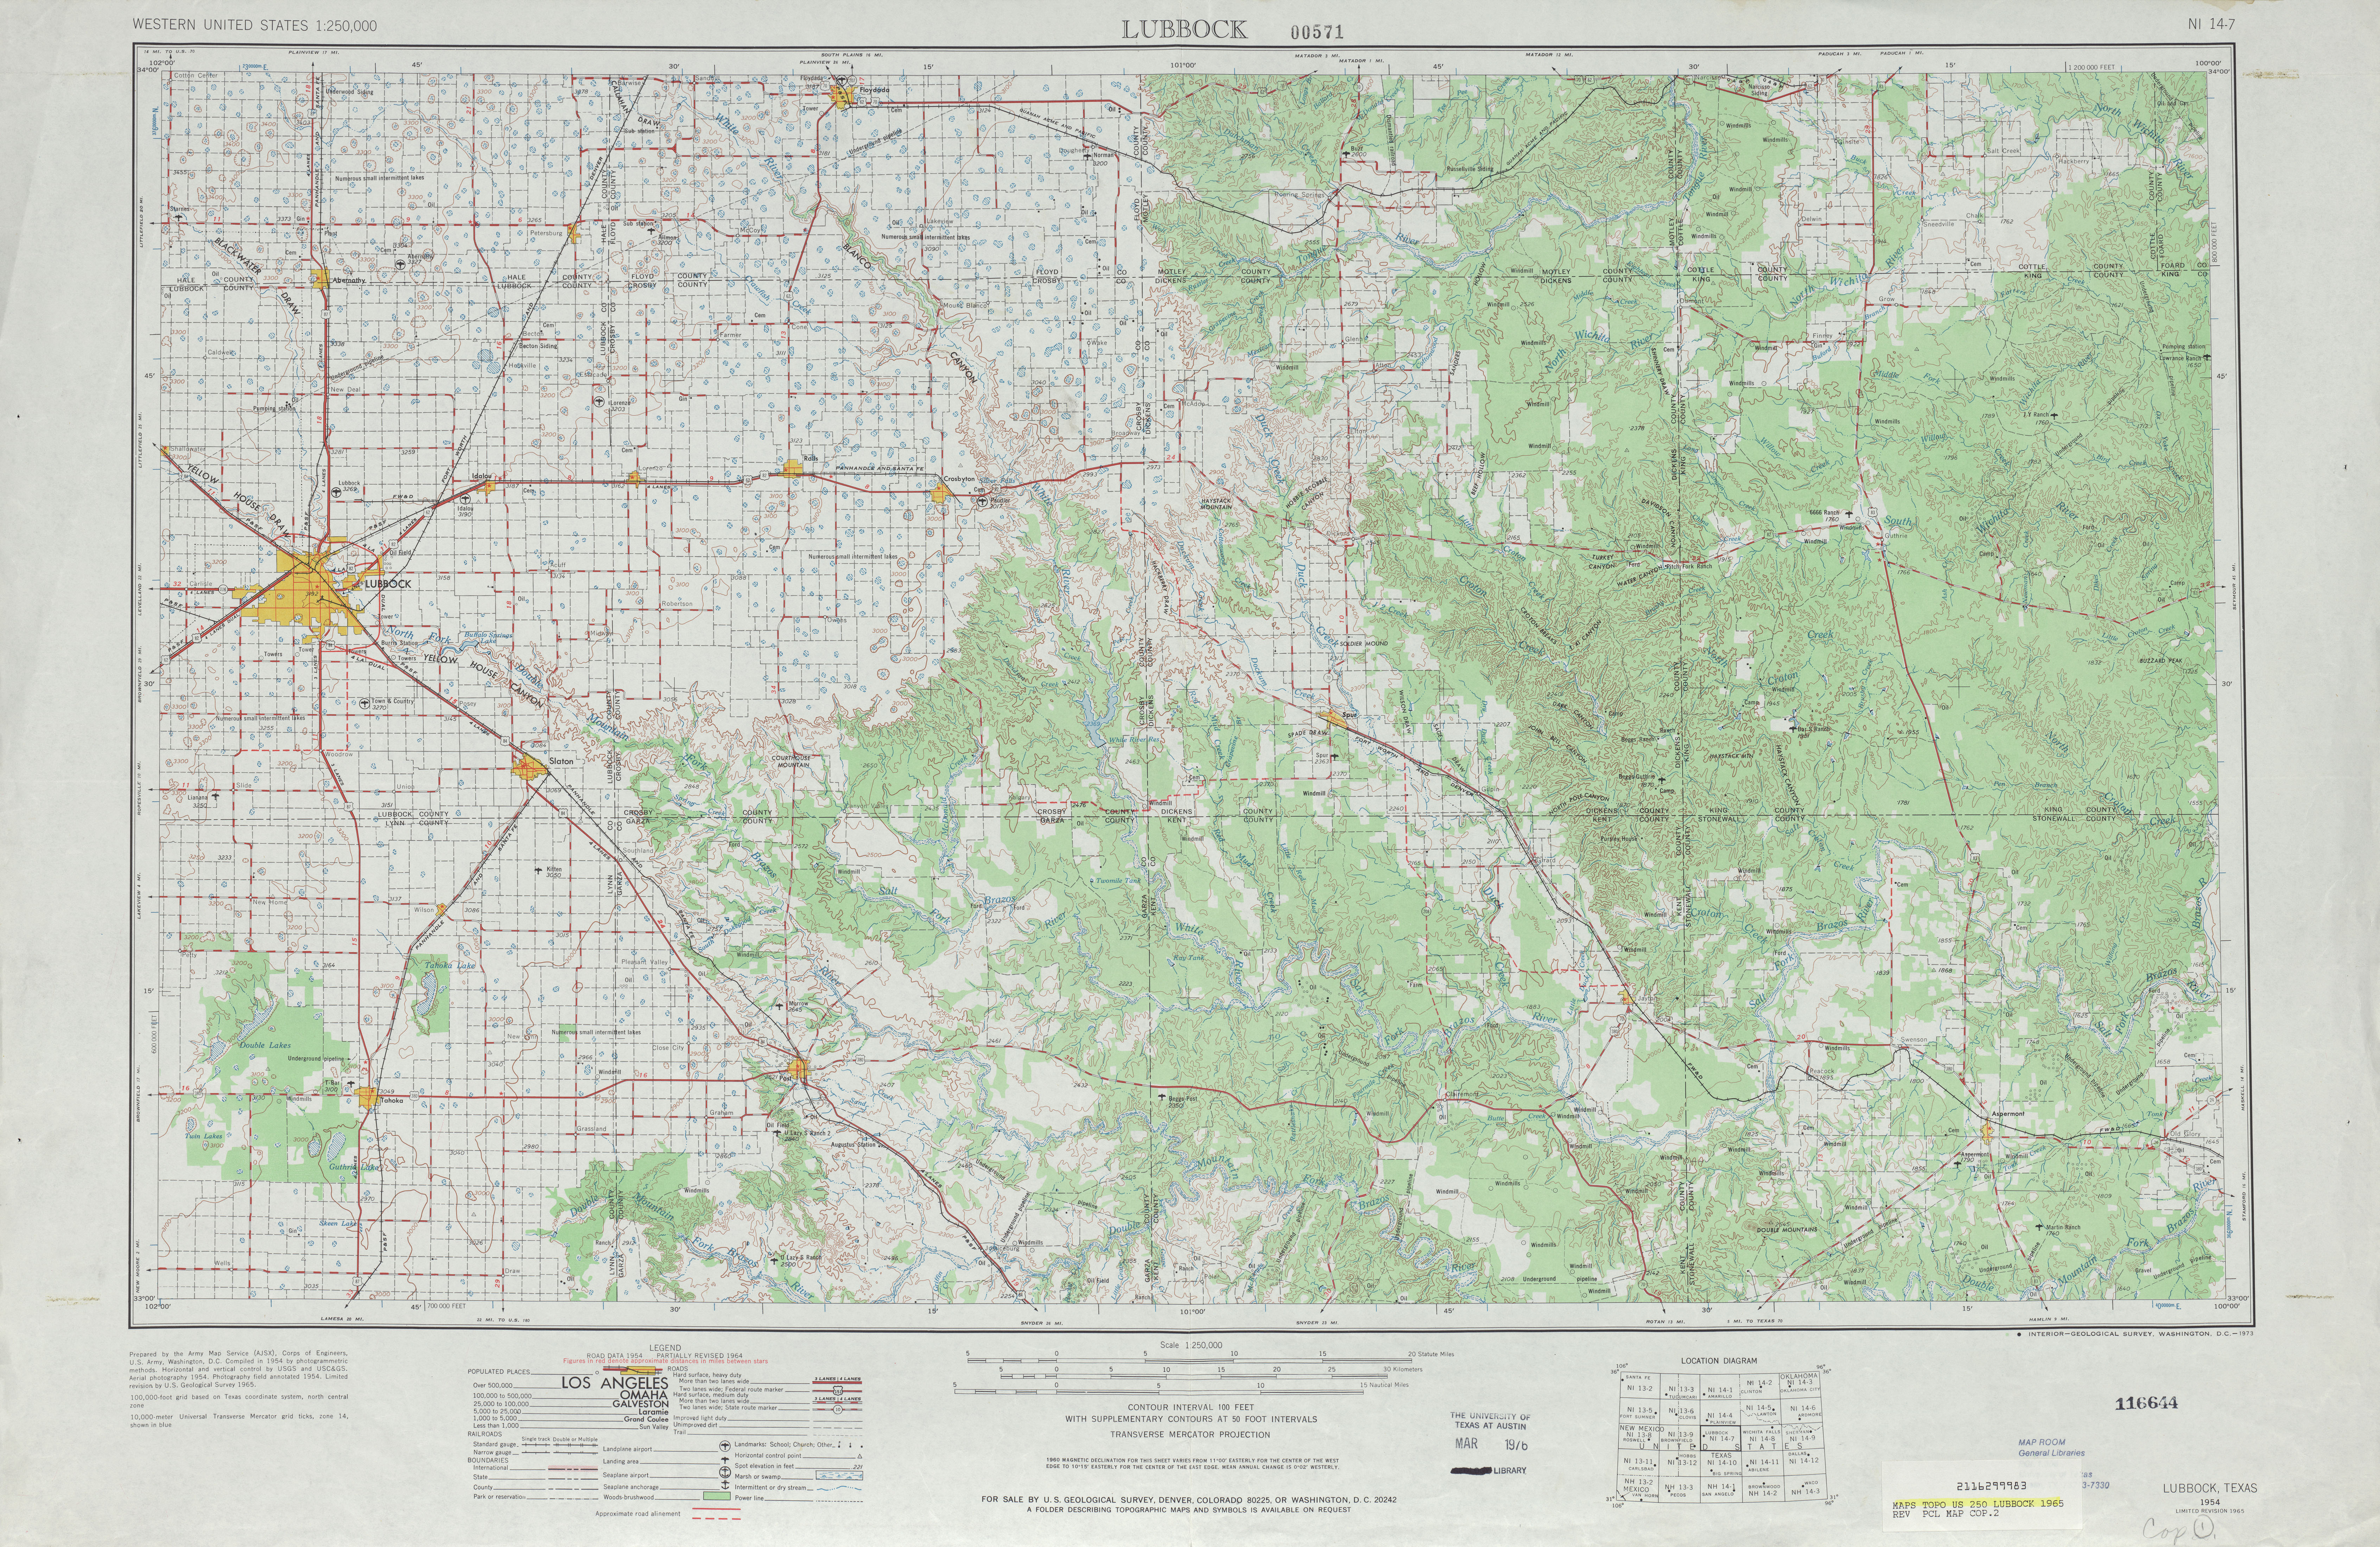 Lubbock Topographic Map Sheet, United States 1965